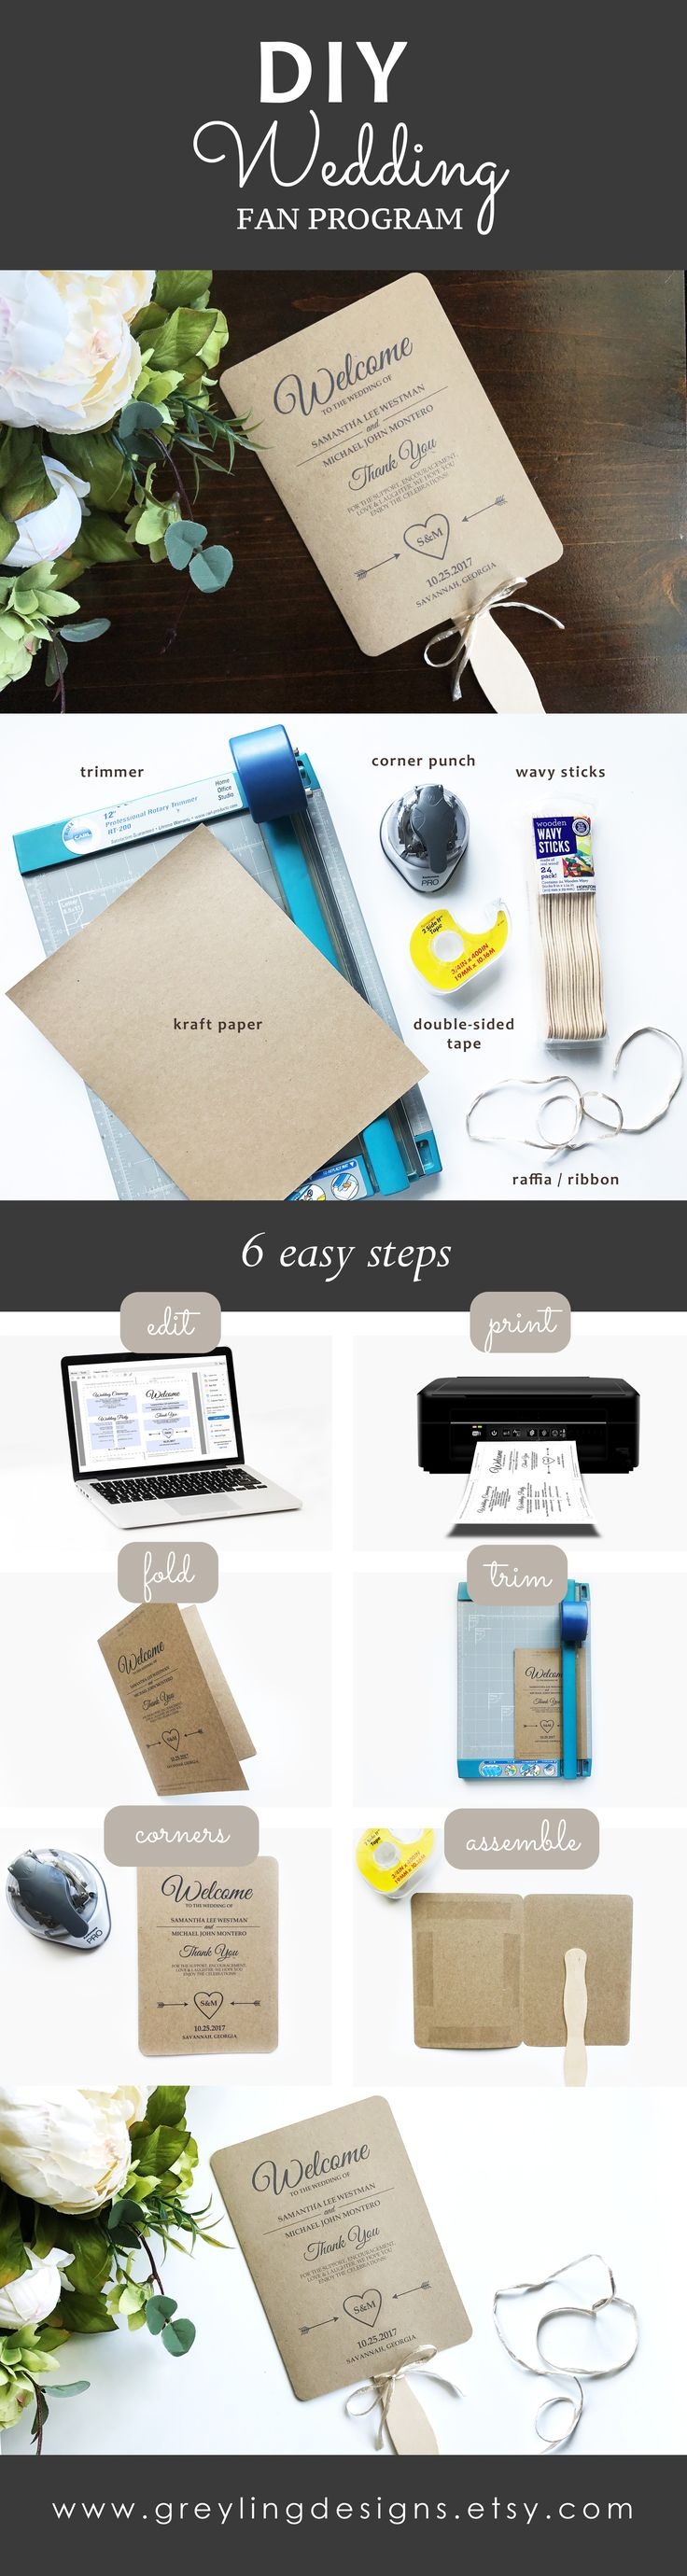 Make we wedding fan program. DIY wedding fan program. 6 easy steps to make a wedding fan program. Easy to use template. Instant template download in our shop